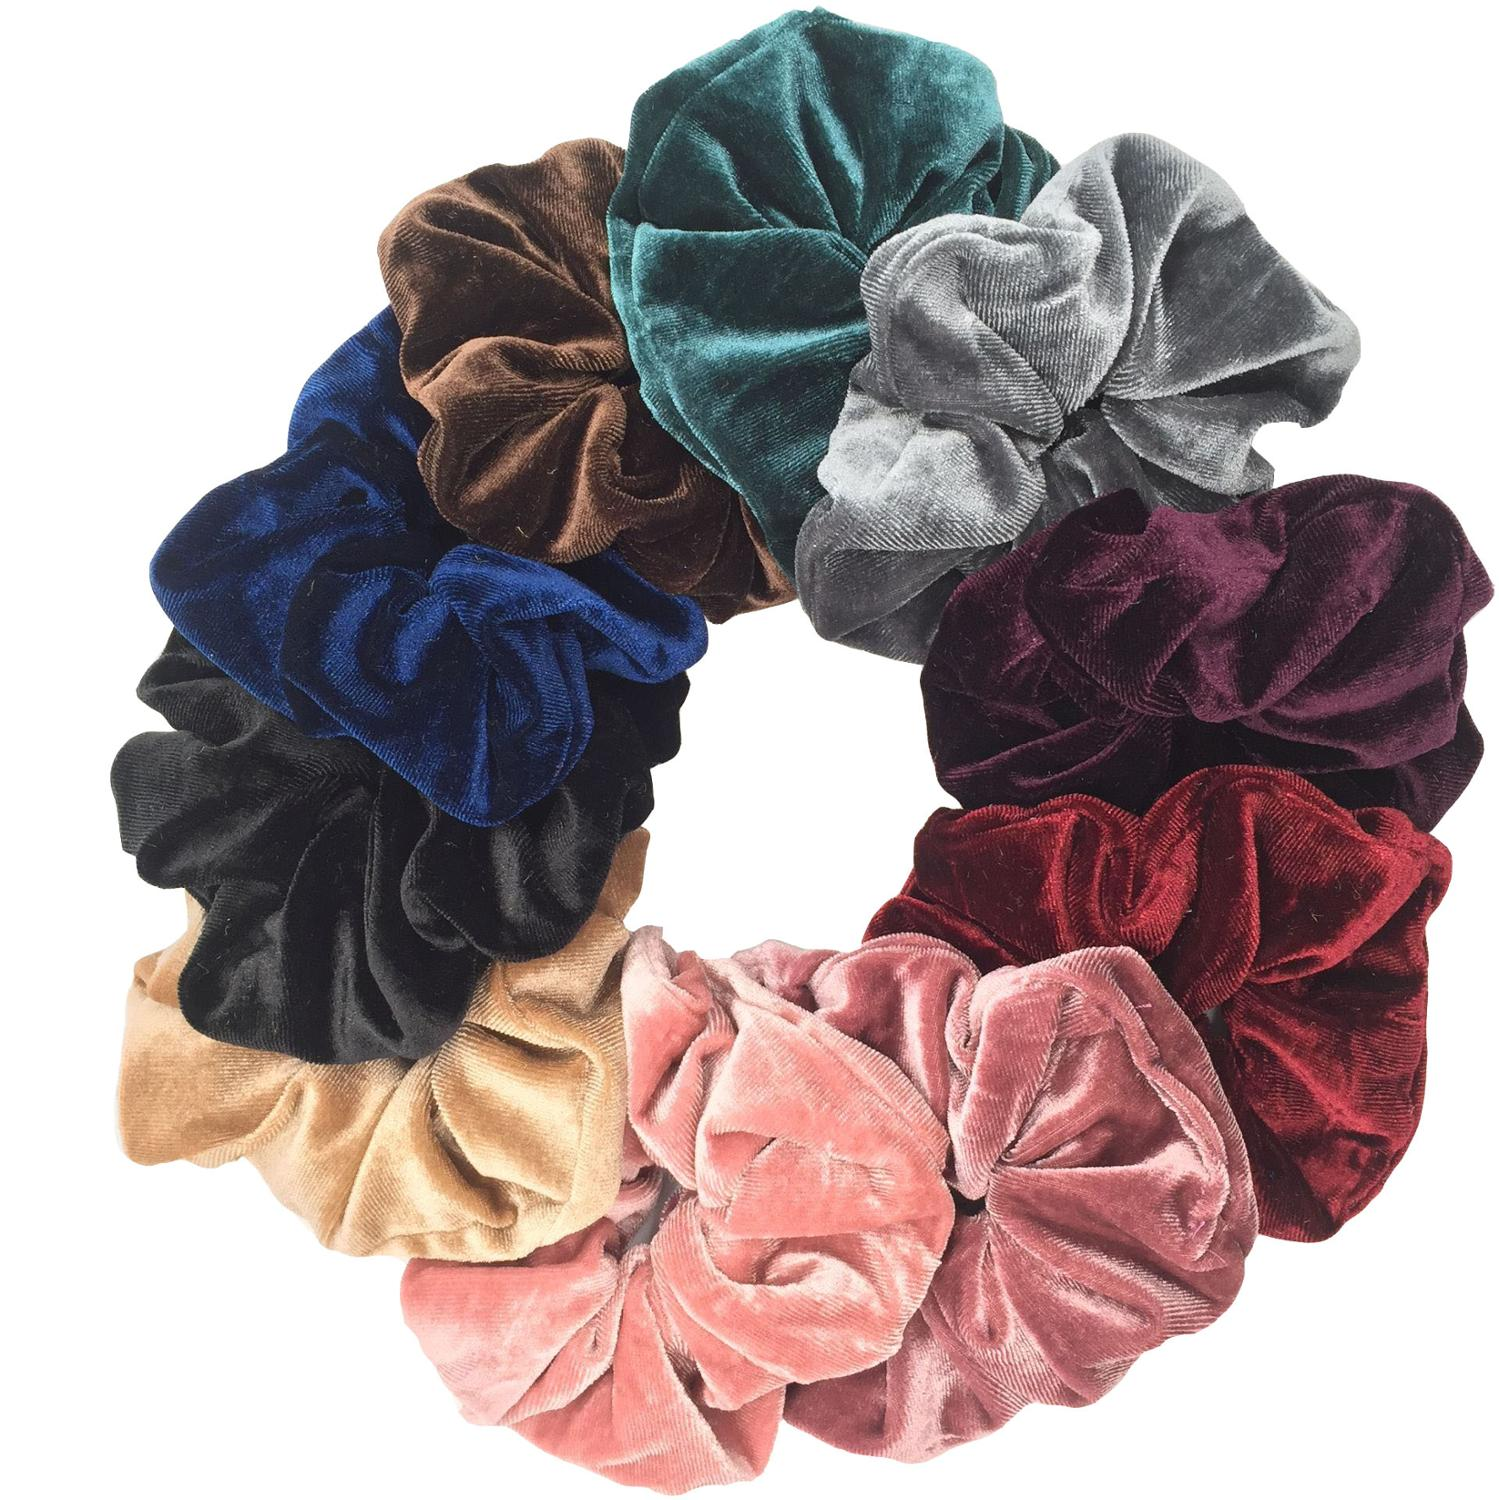 10pcs/lot Women's Winter Velvet Hair Scrunchies Leopard Hair Tie Hair Accessories Ponytail Holder Hair Large And Small Size